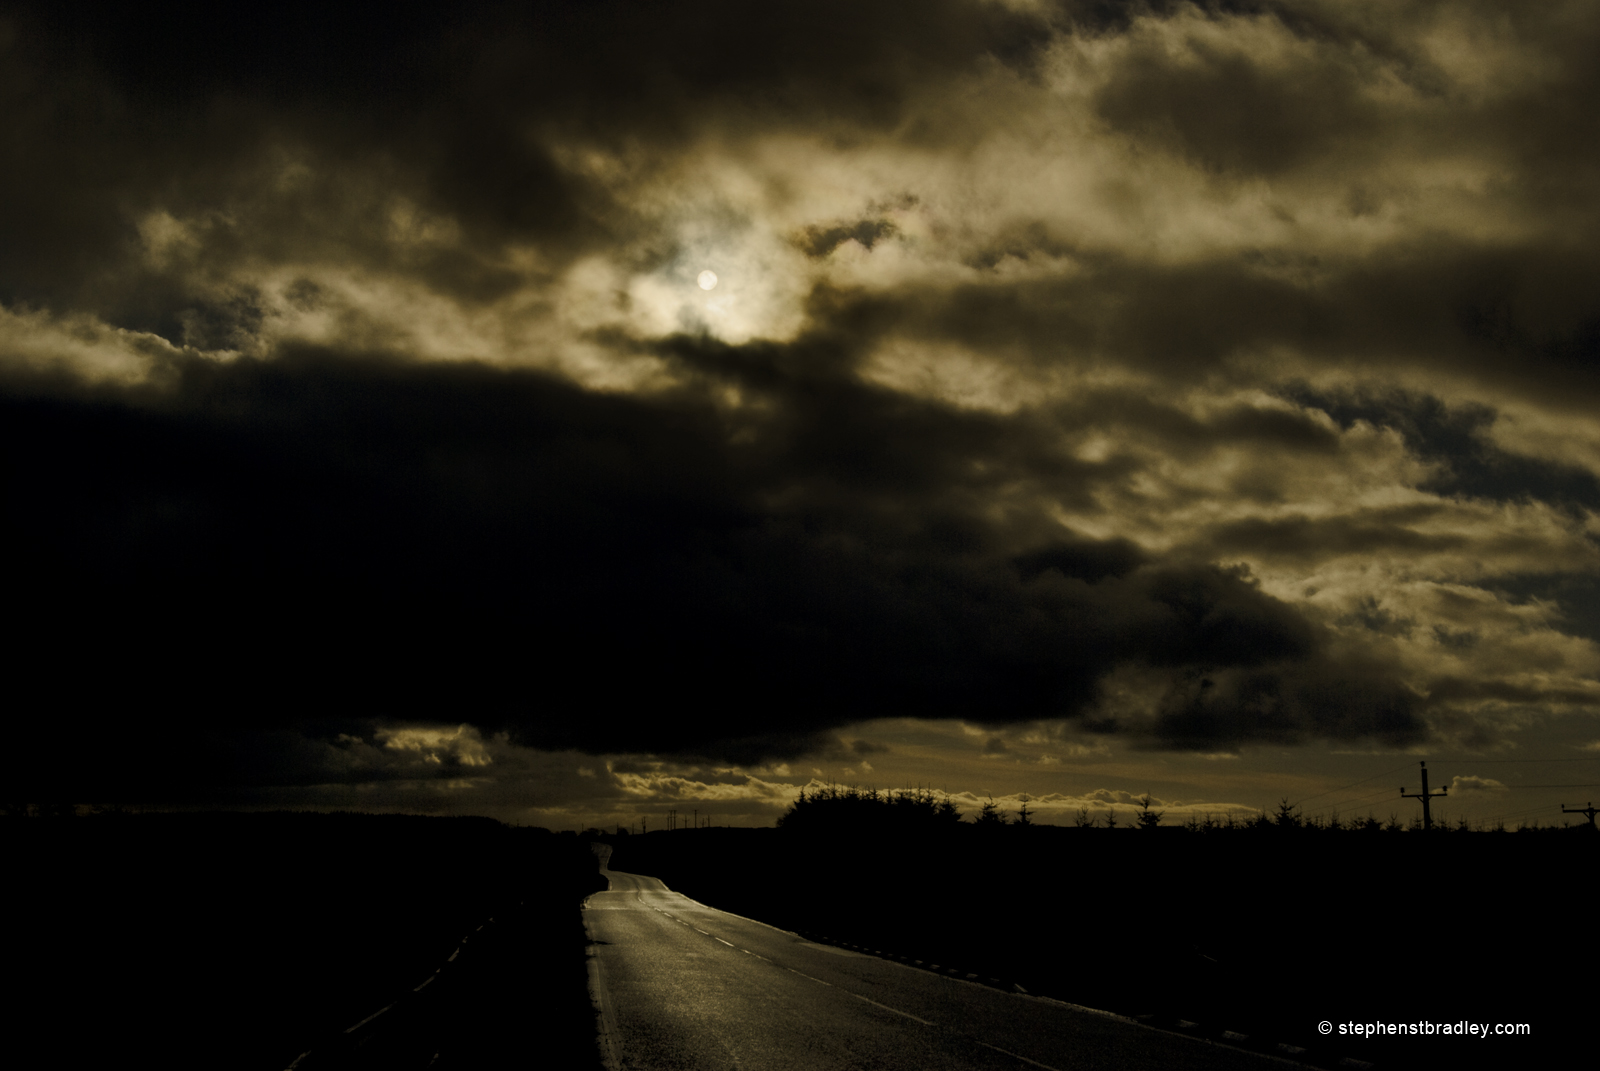 Landscape photograph of sun over Dundrod Road, Northern Ireland image 4746.